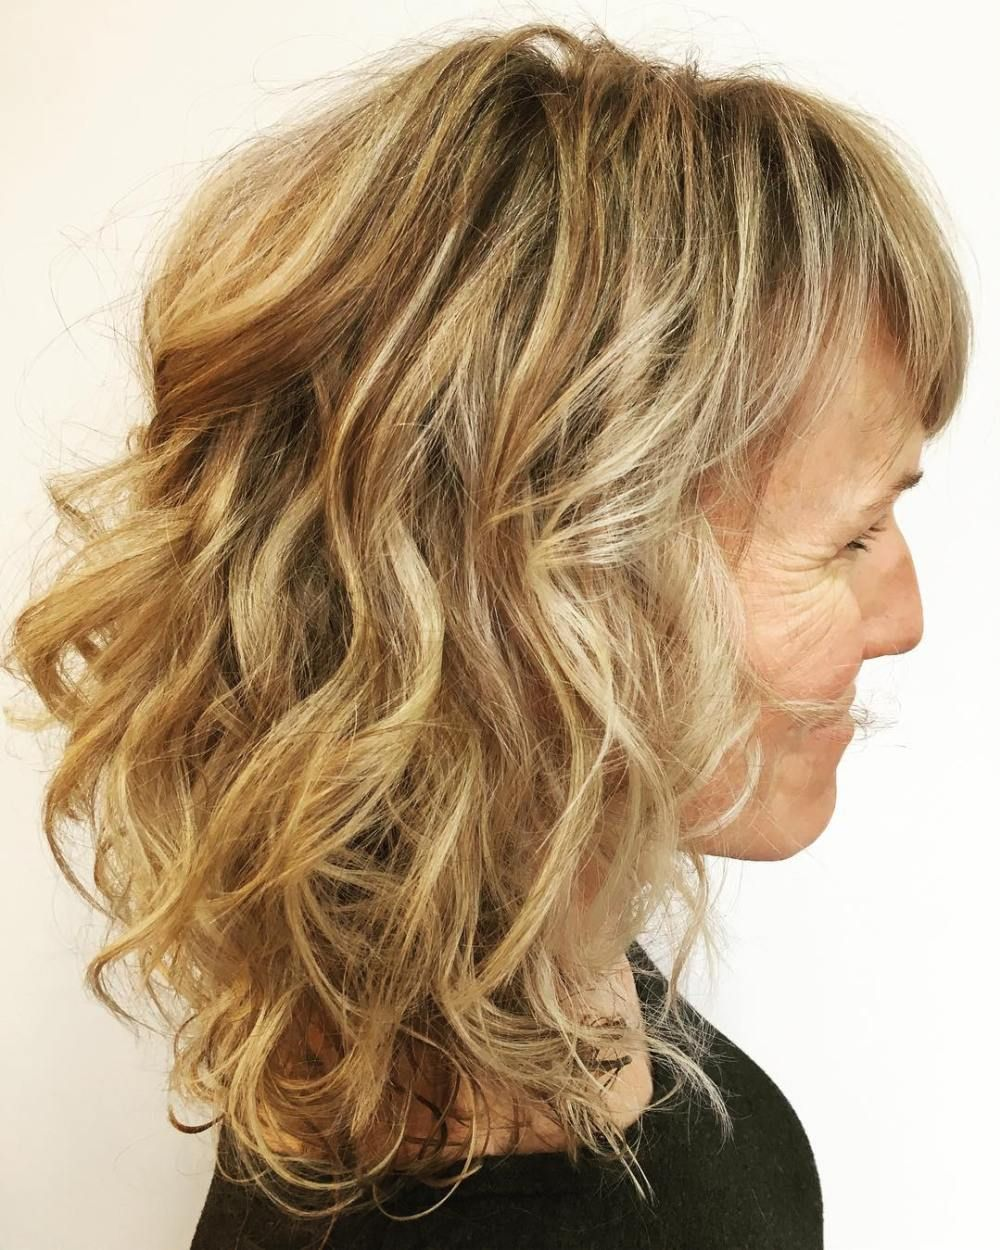 curly hair style ideas 80 best modern haircuts and hairstyles for 50 4531 | 1482aaf326674c619ef5a4531fe17b5e